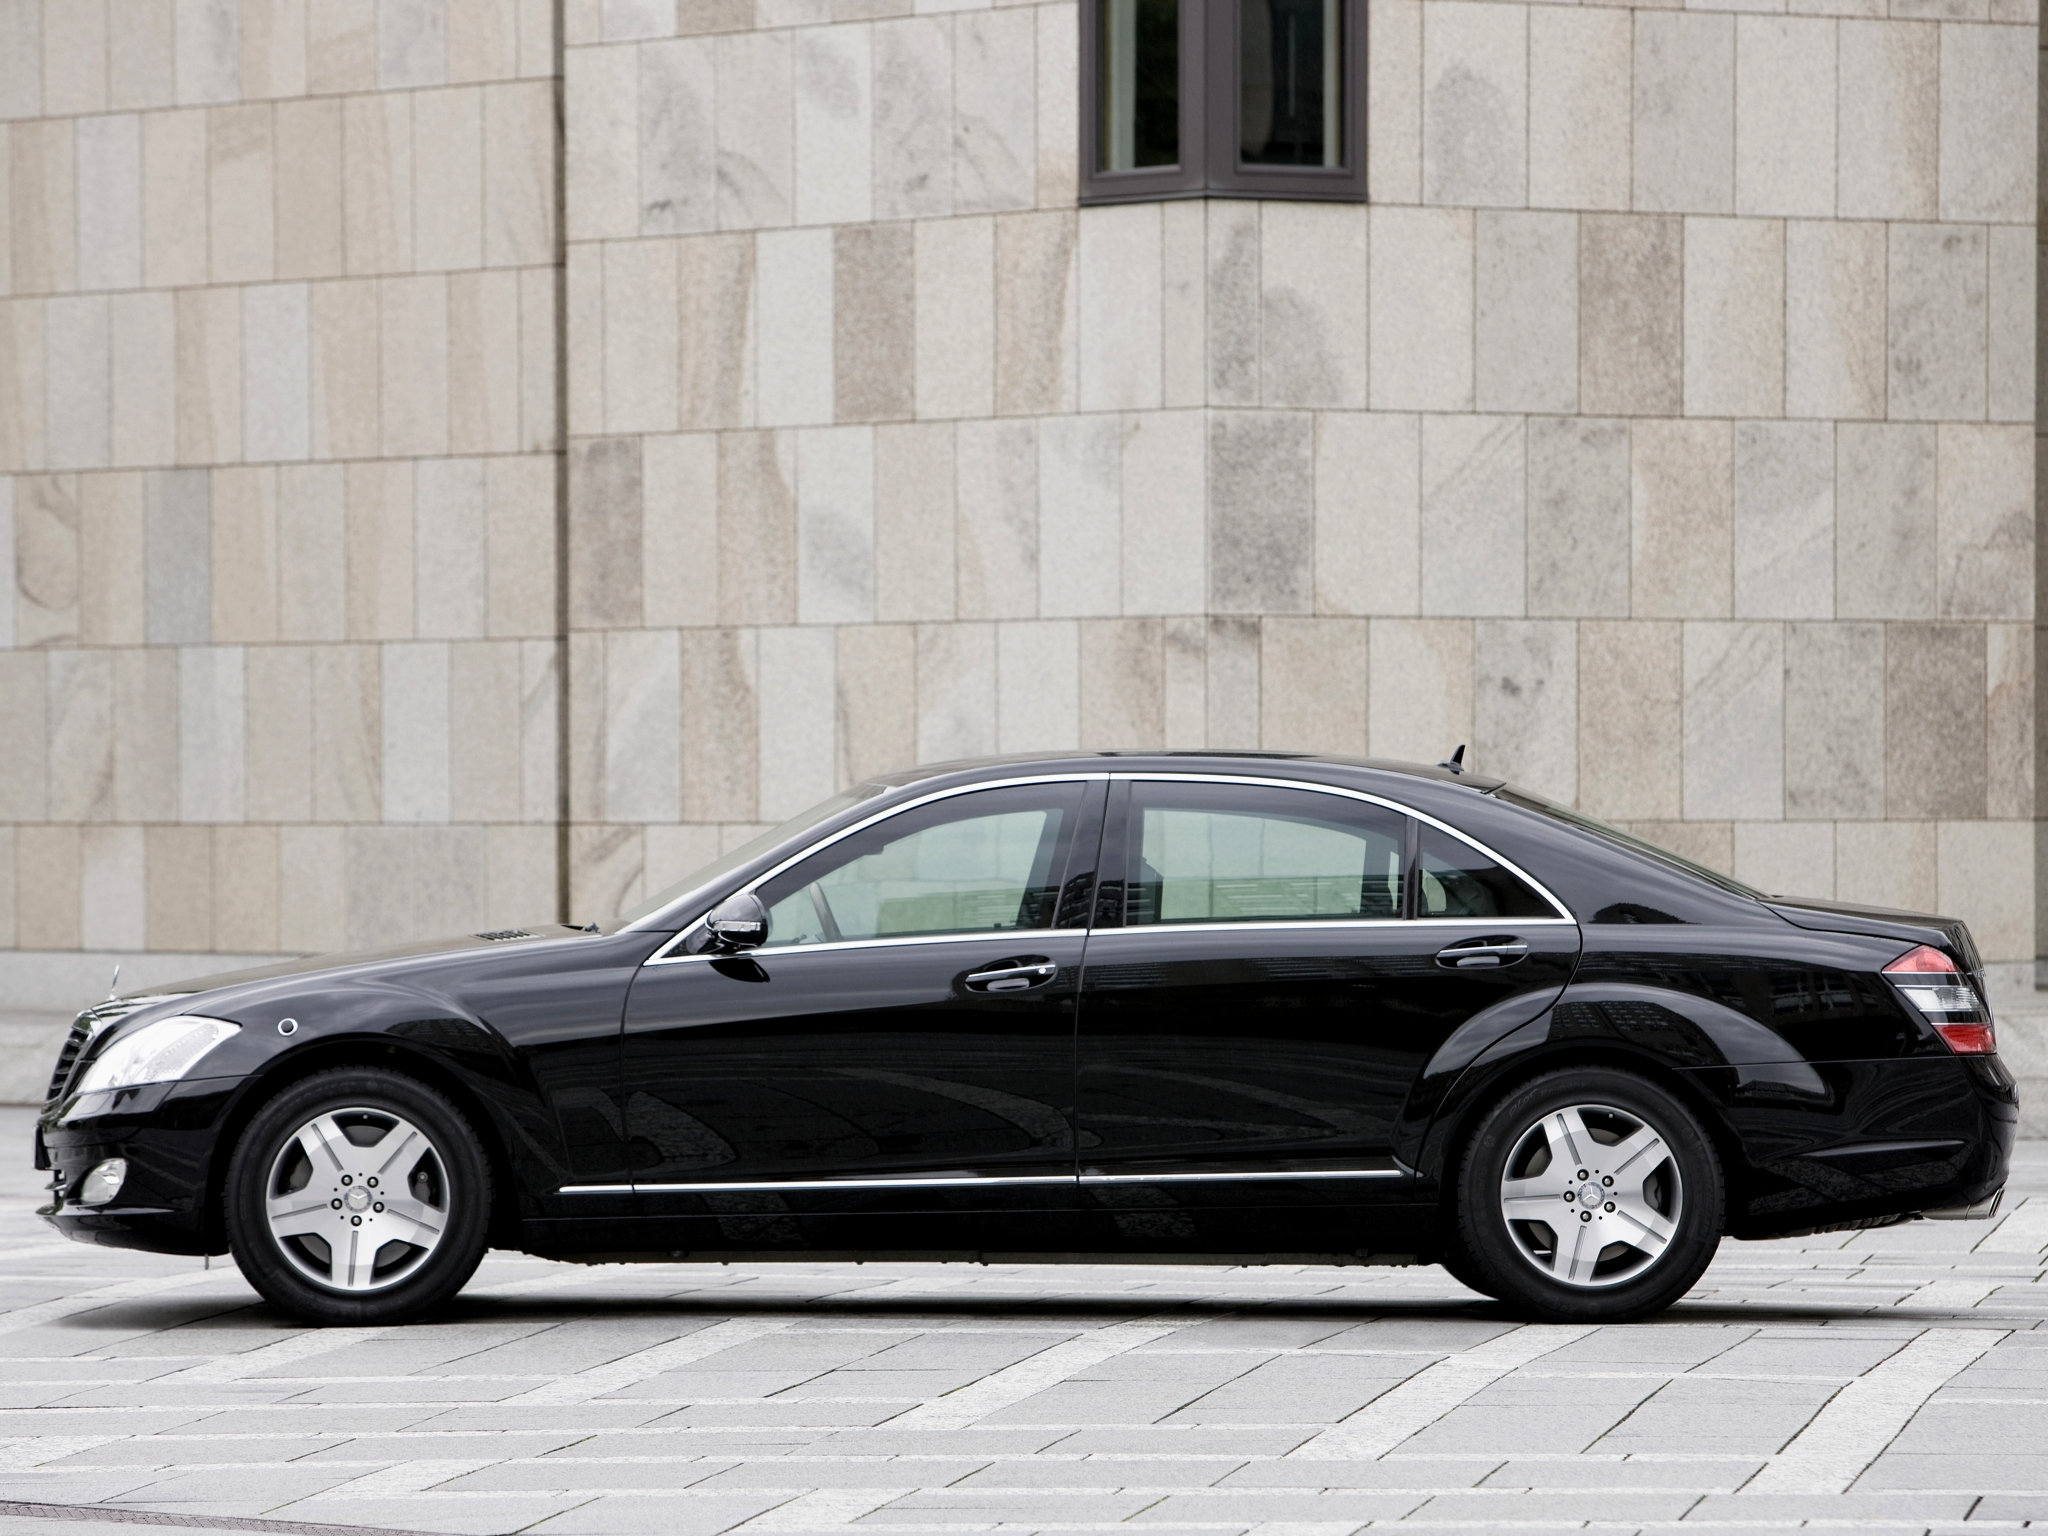 2007 armored mercedes benz s 600 guard w221 luxury h